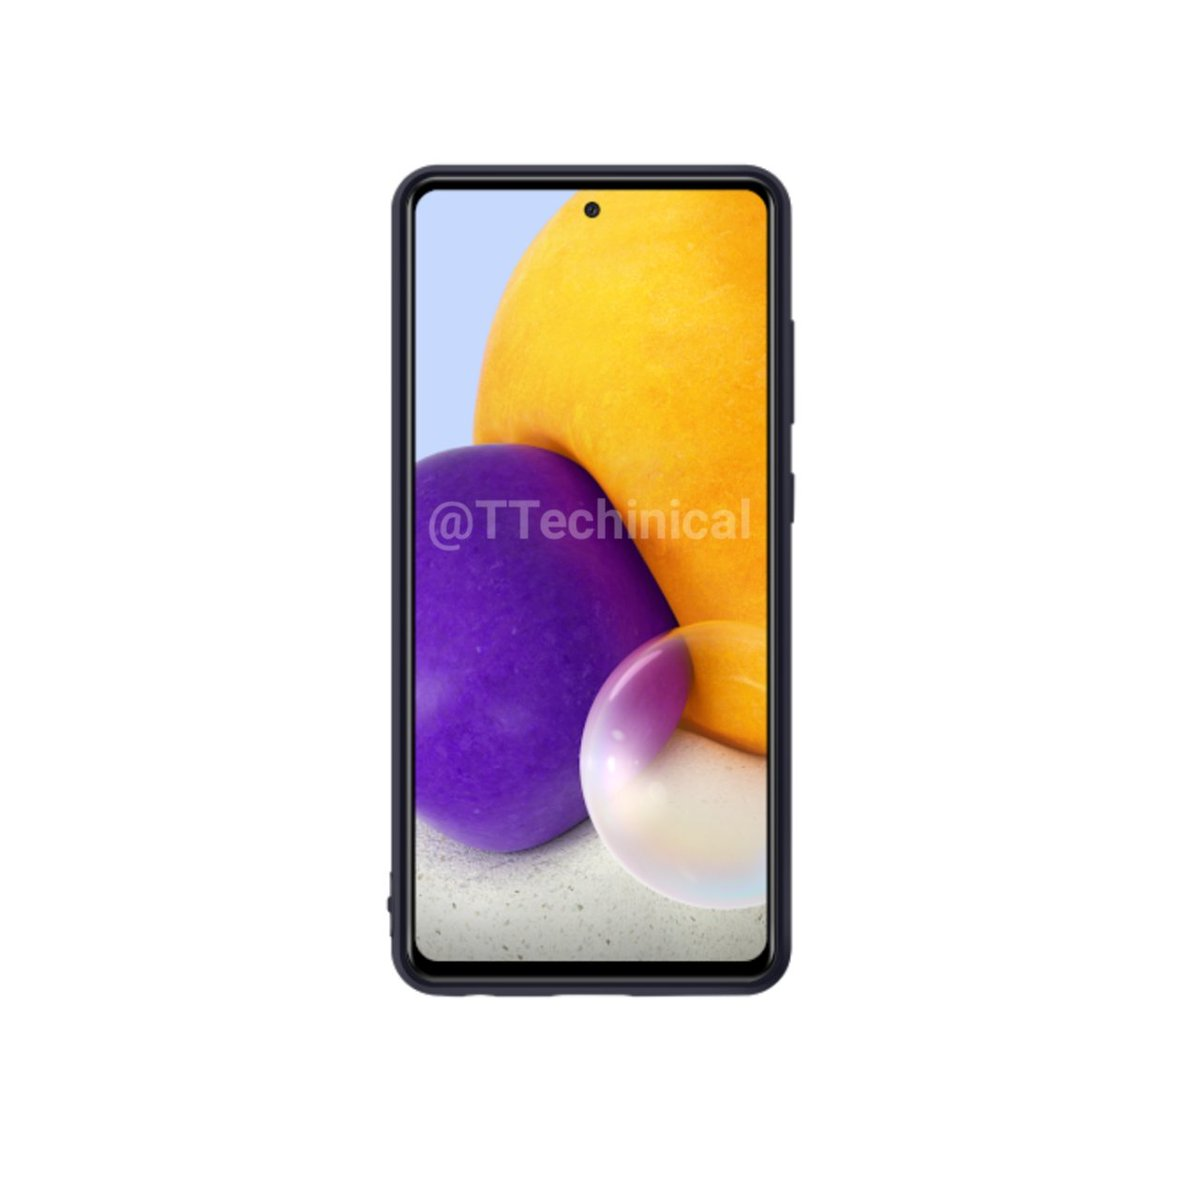 Samsung Galaxy A72 variant listed on Google Play Console